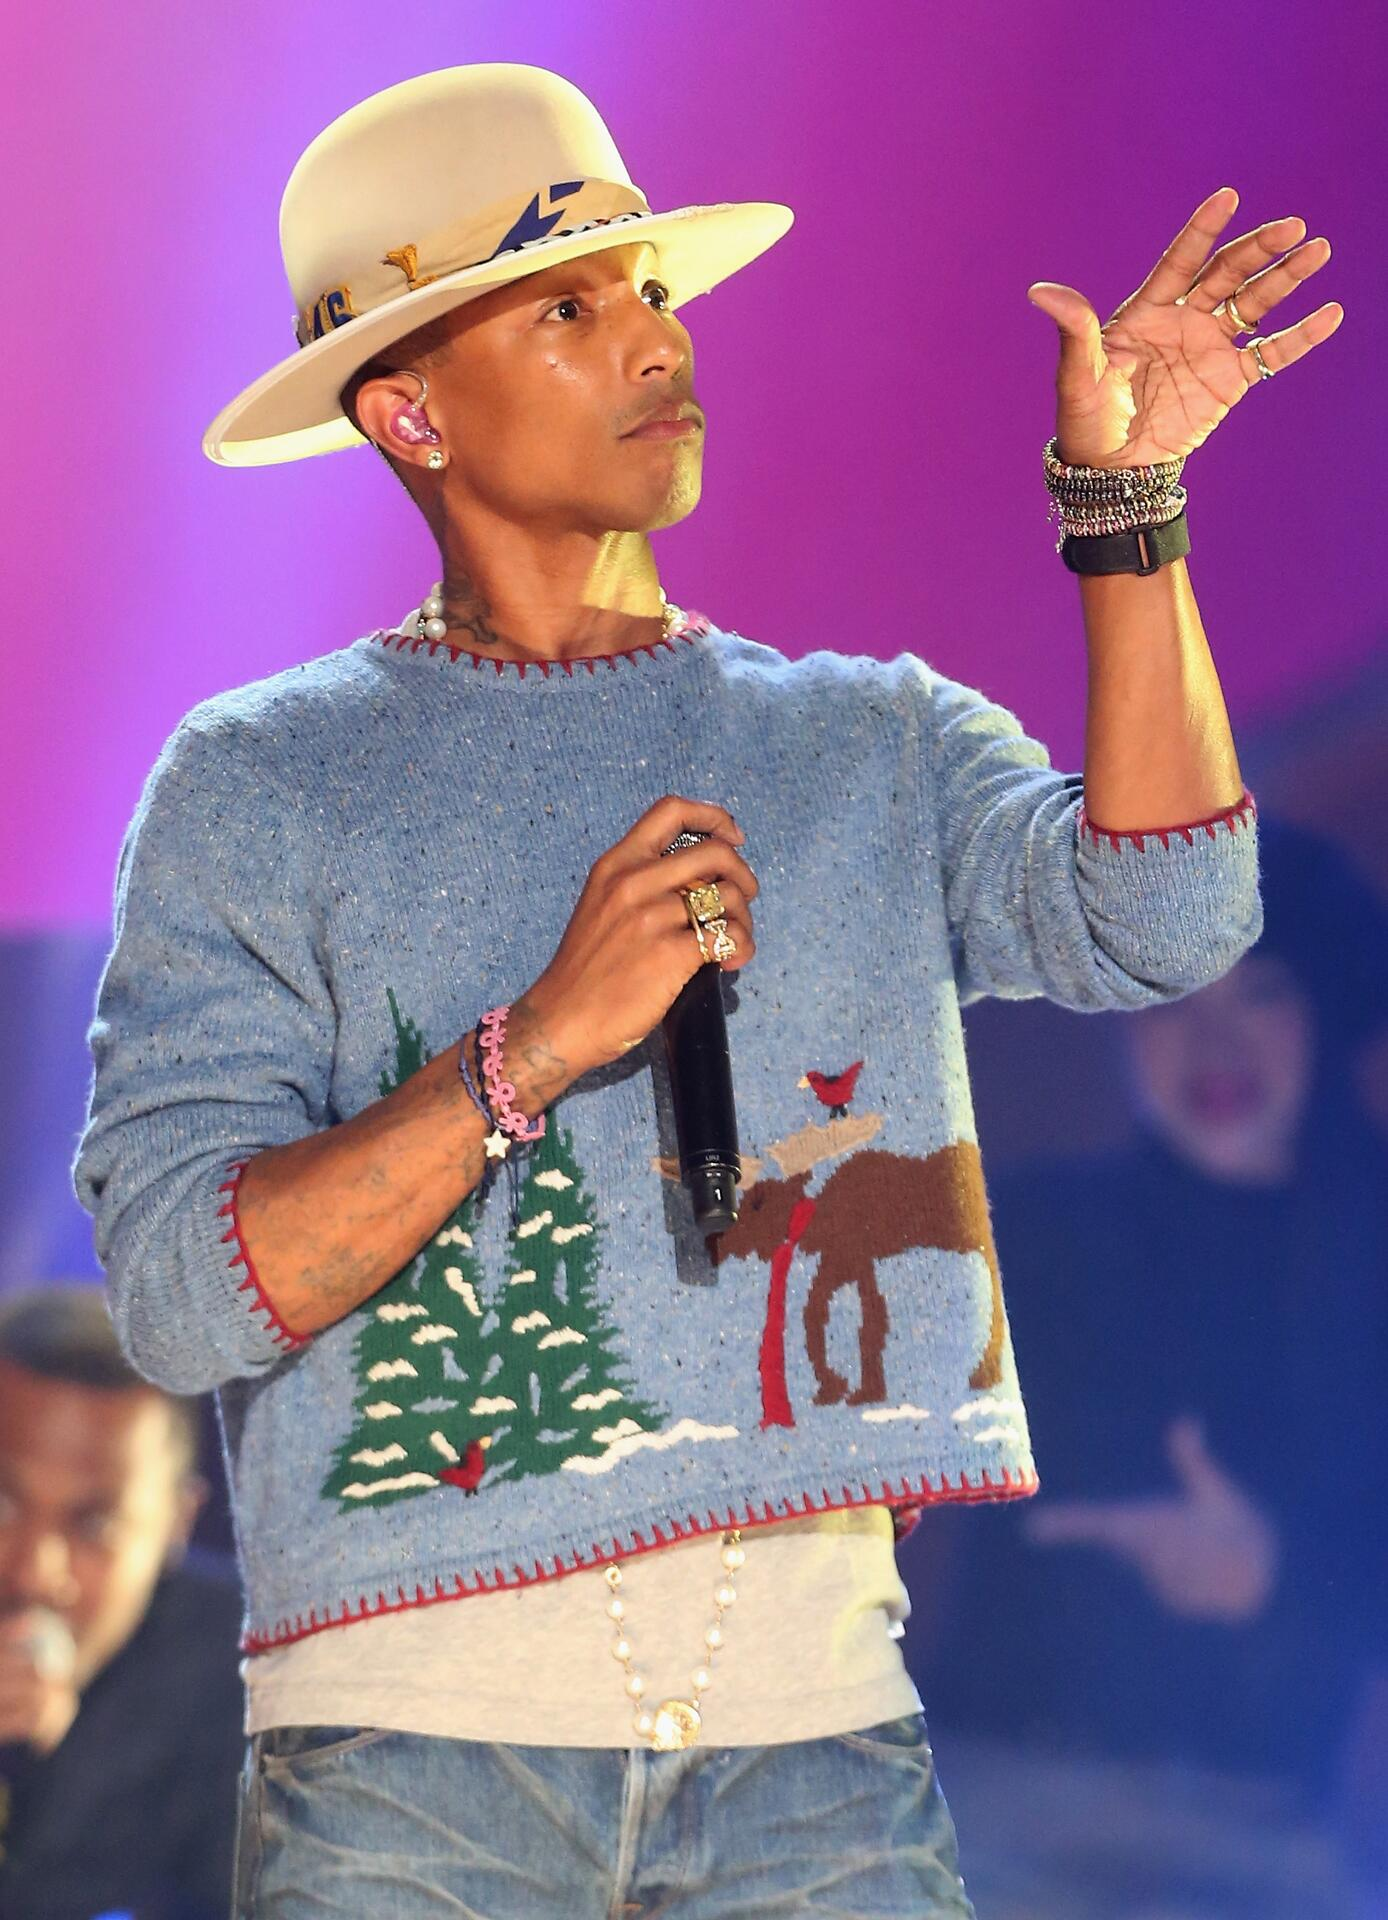 Bild zu Pharrell Williams, Weihnachten, Ugly Sweater